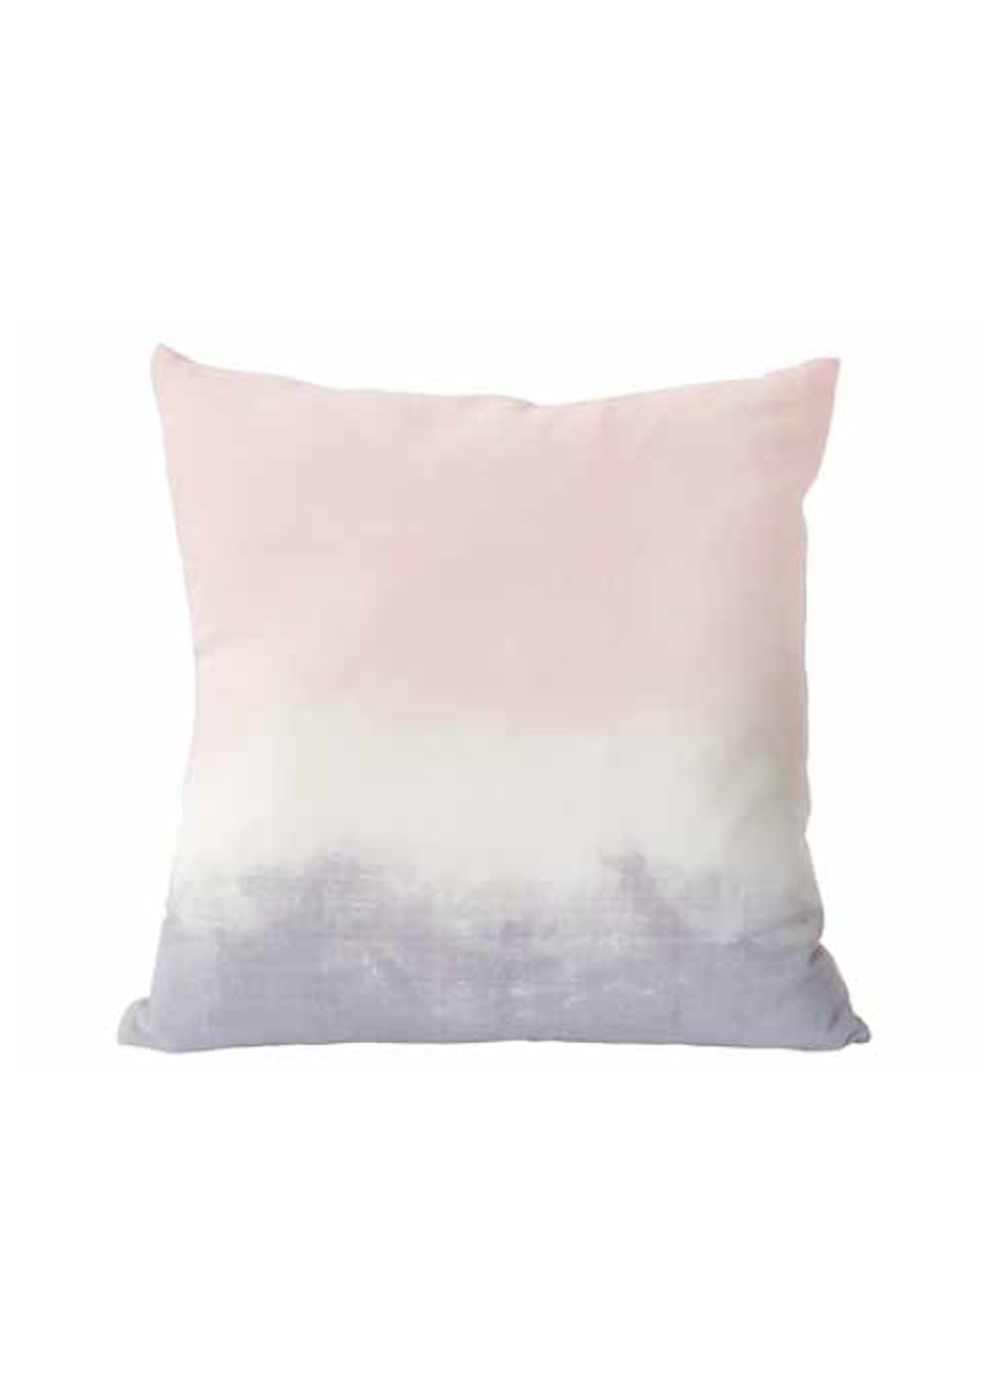 WOKO CUSHION CORVER